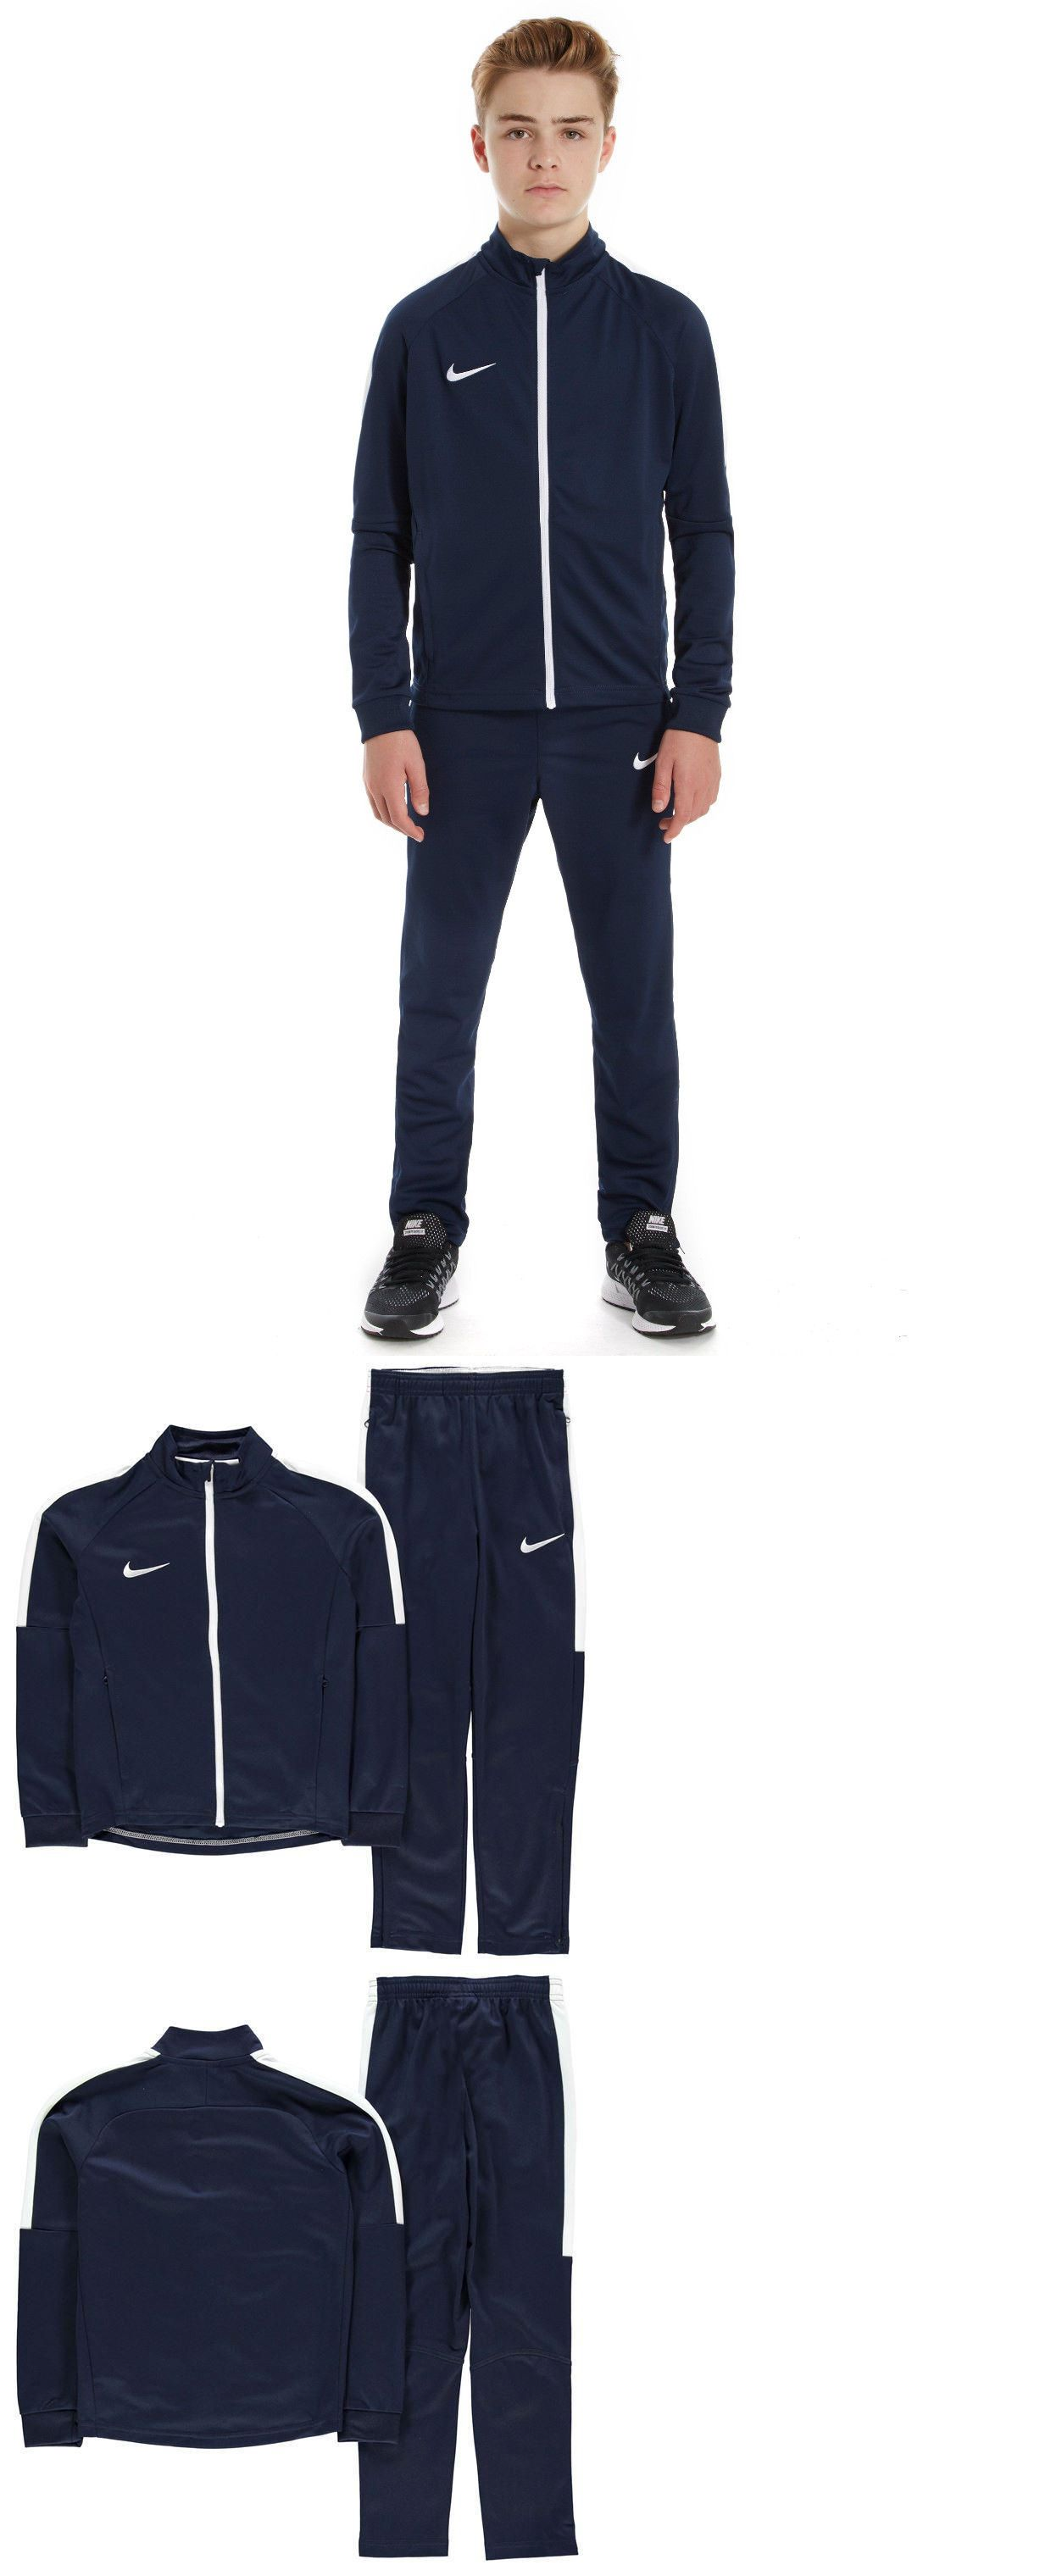 Other Boys Clothes Sizes 4 1067: Nike Academy Warm Up Tracksuit Junior Boys  Size 12